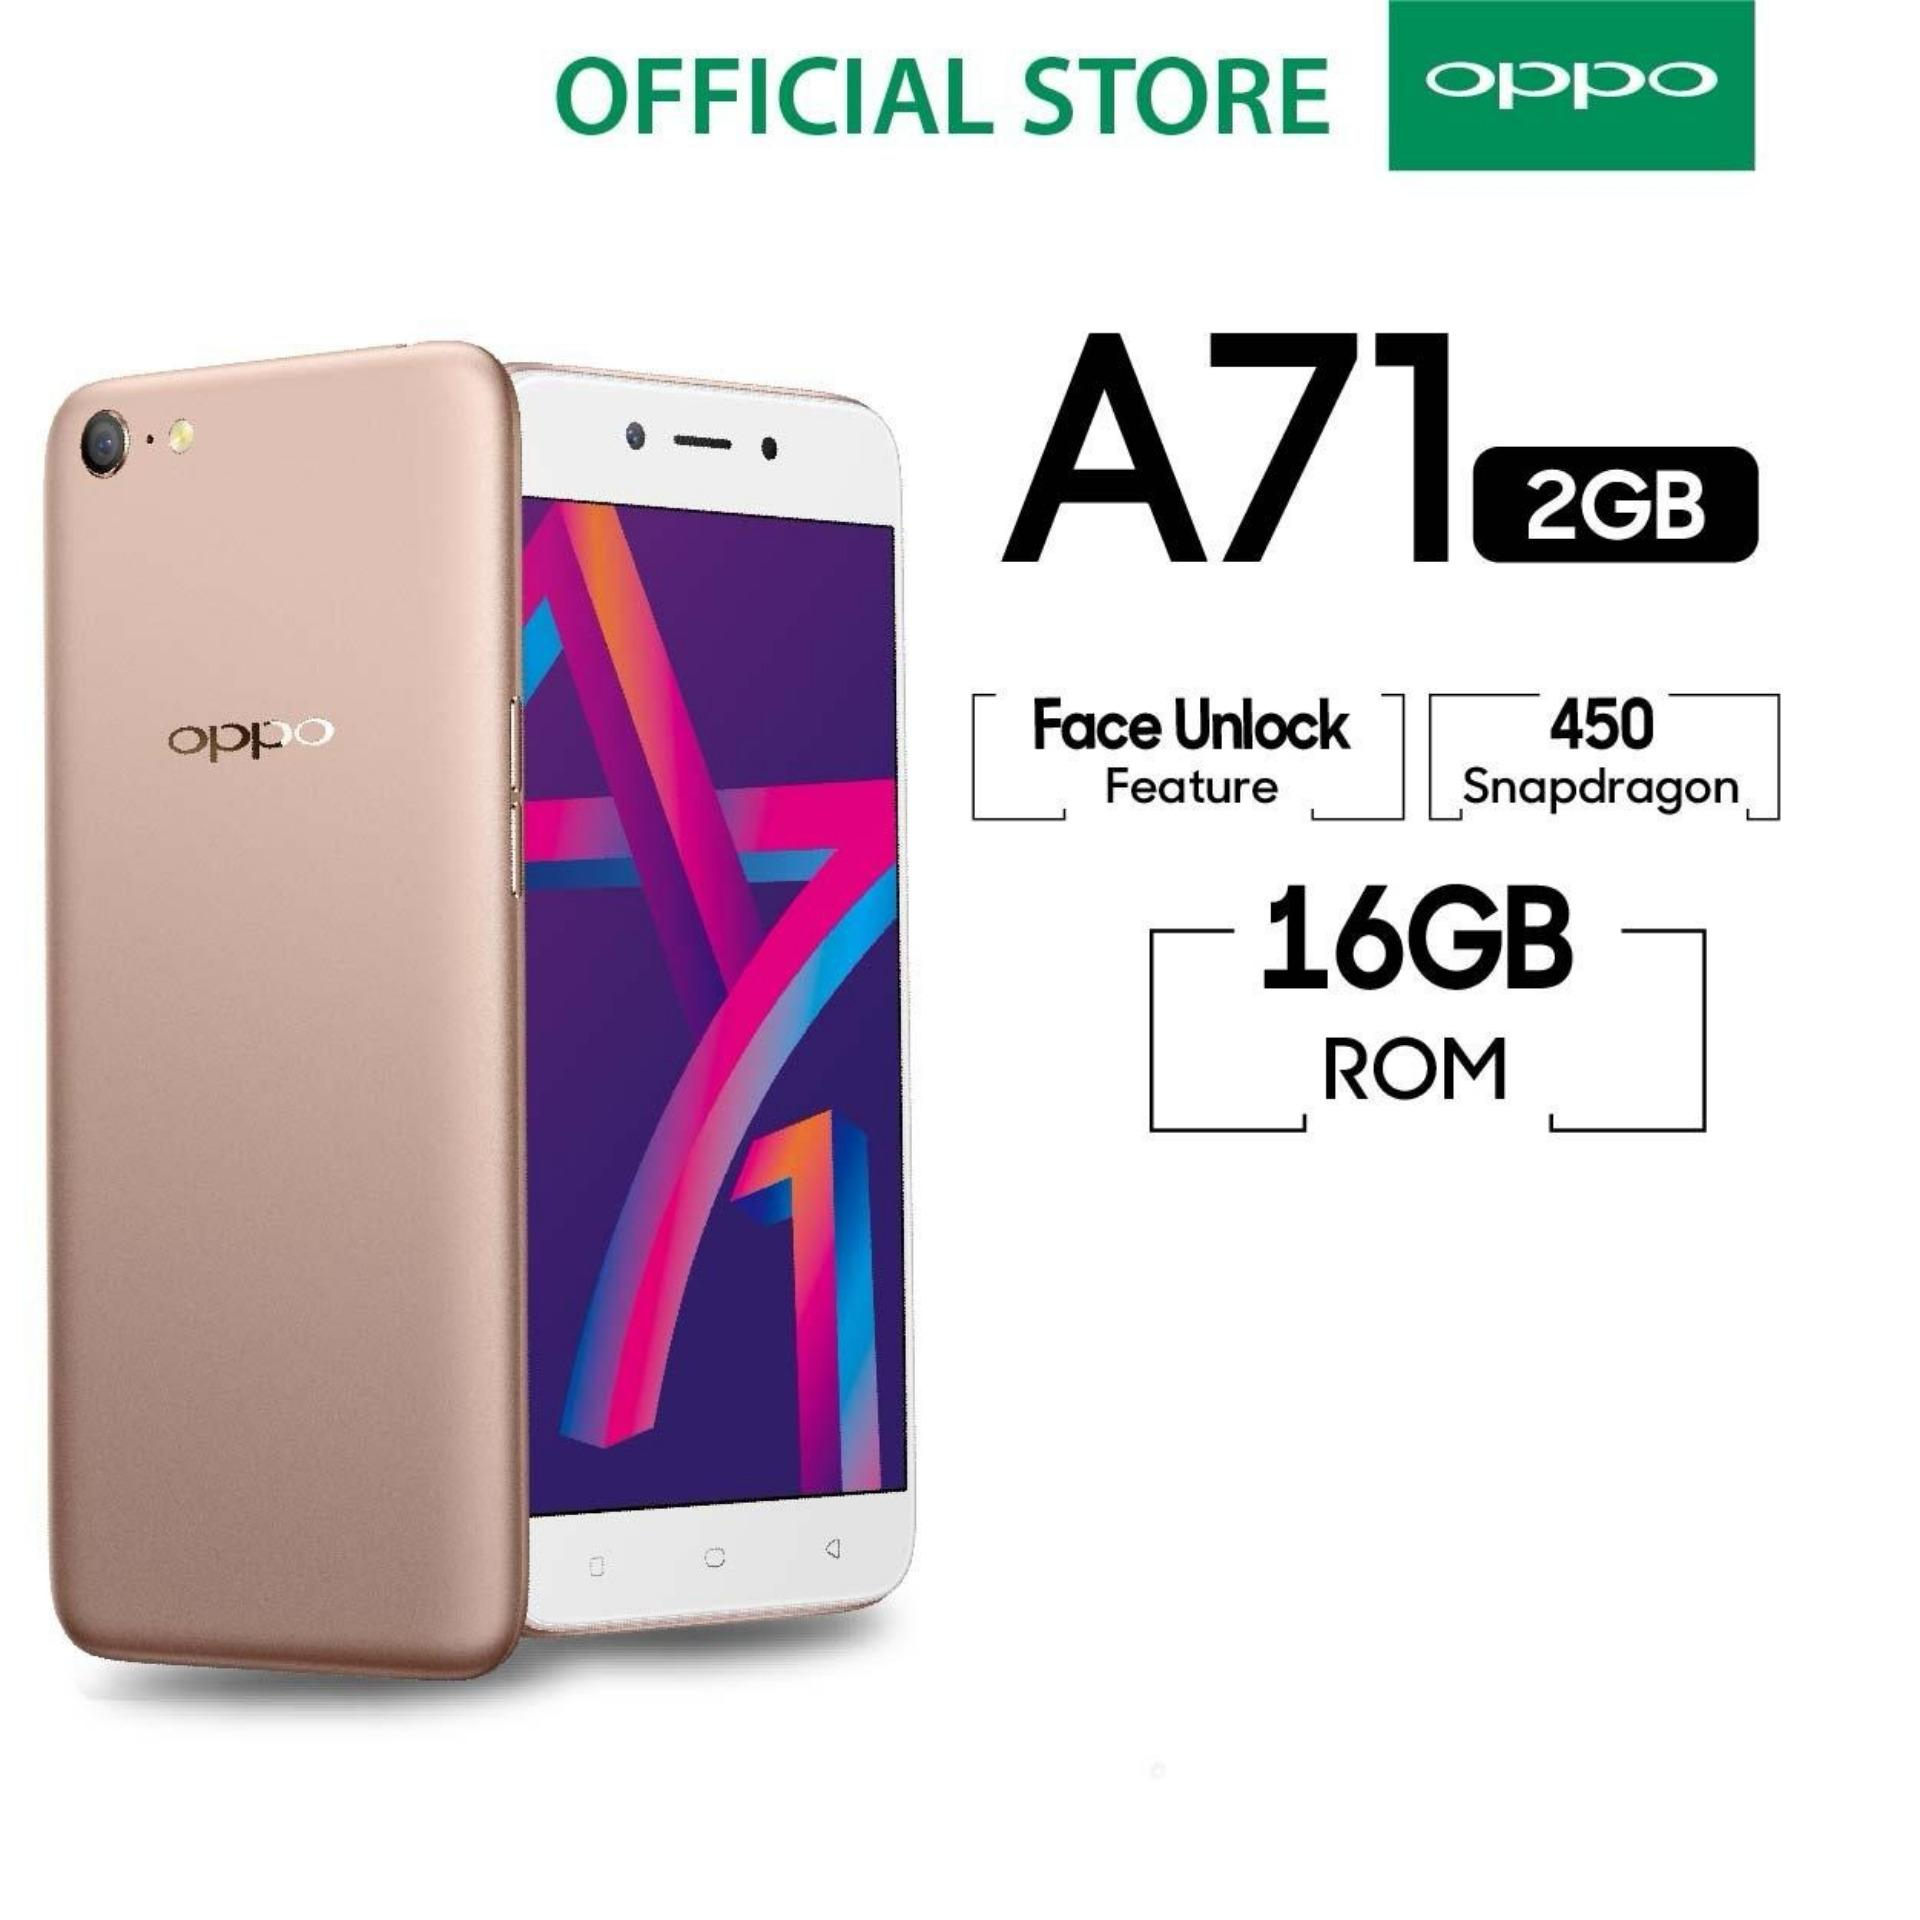 OPPO A71 ANDROID 7 1 NOUGOT 2 GB RAM 16 GB ROM